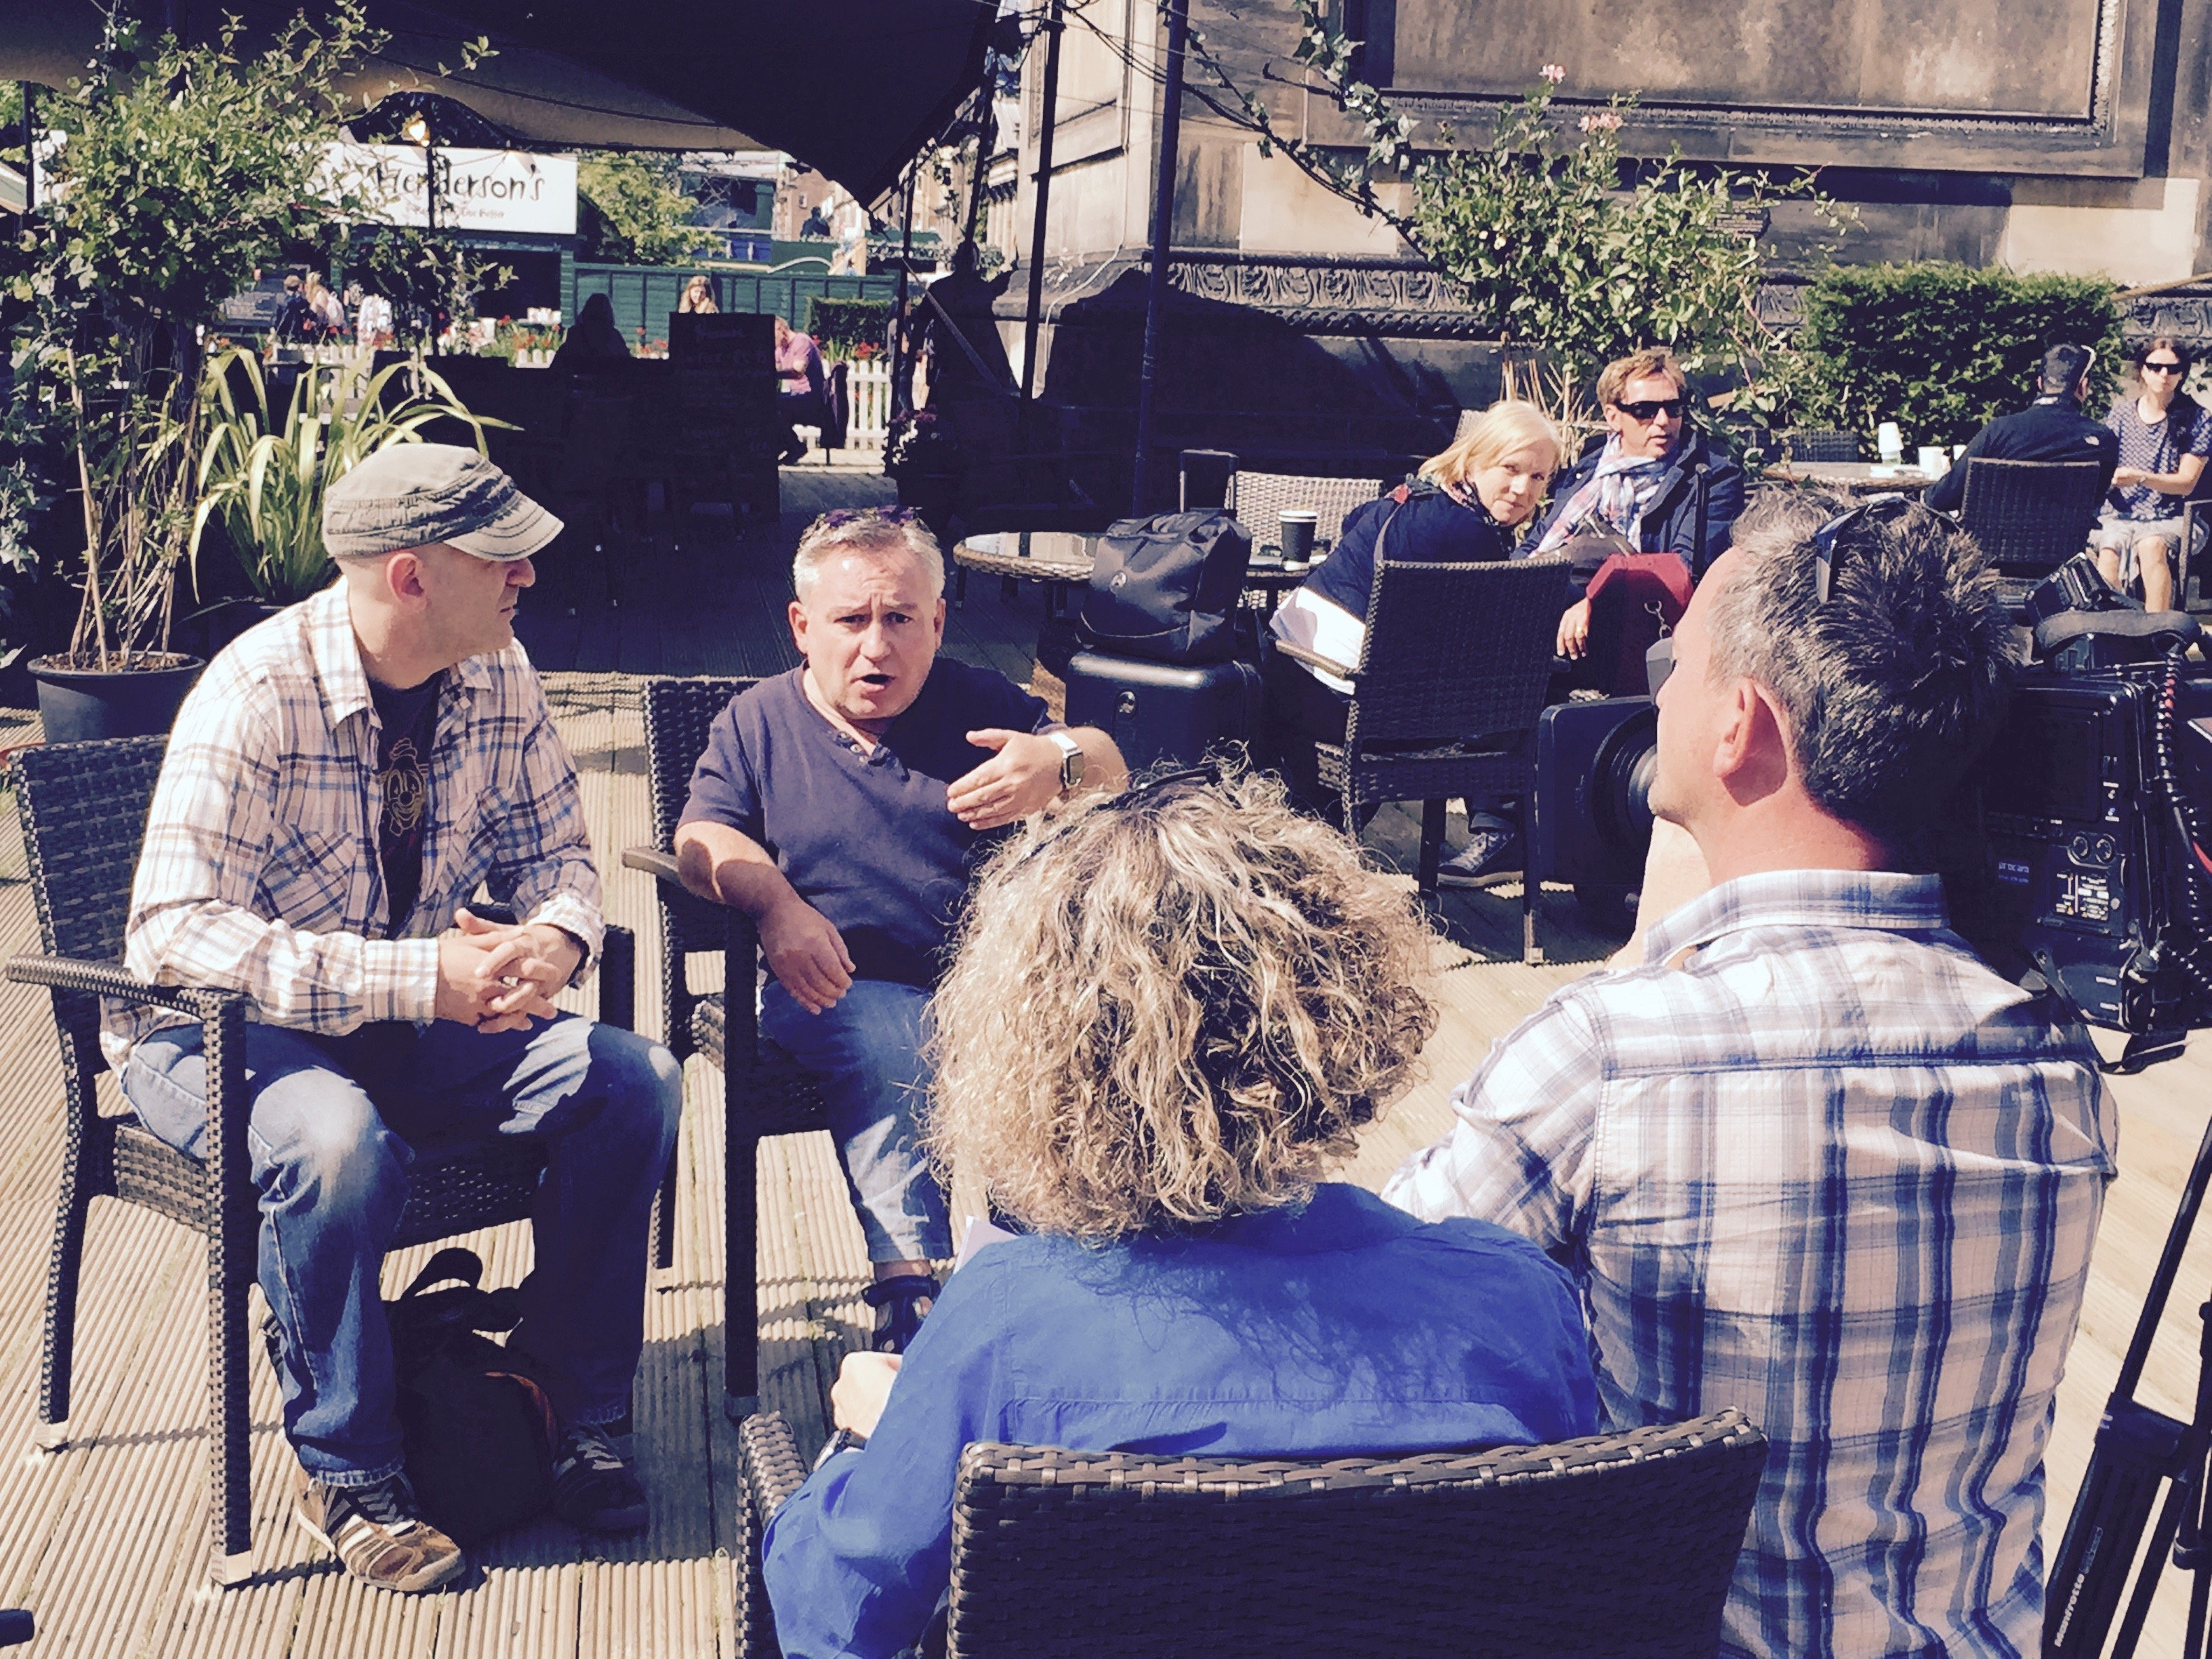 Edinburgh Fringe 2015 German TV interview with Steve Best